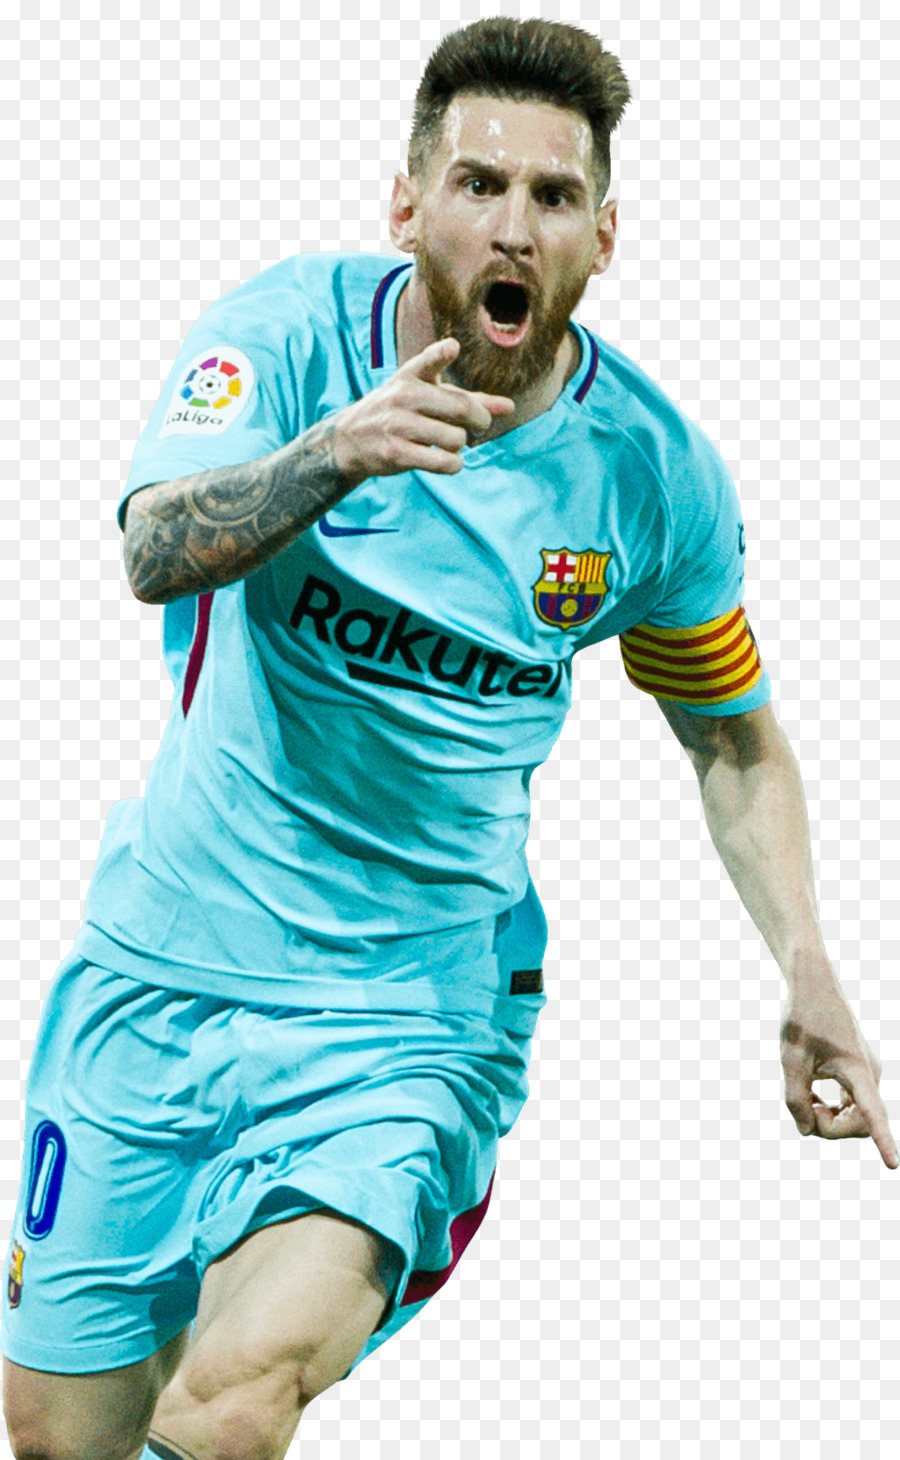 Messi 2018 clipart image black and white stock Messi Cartoon clipart - Football, Sports, Ball, transparent ... image black and white stock